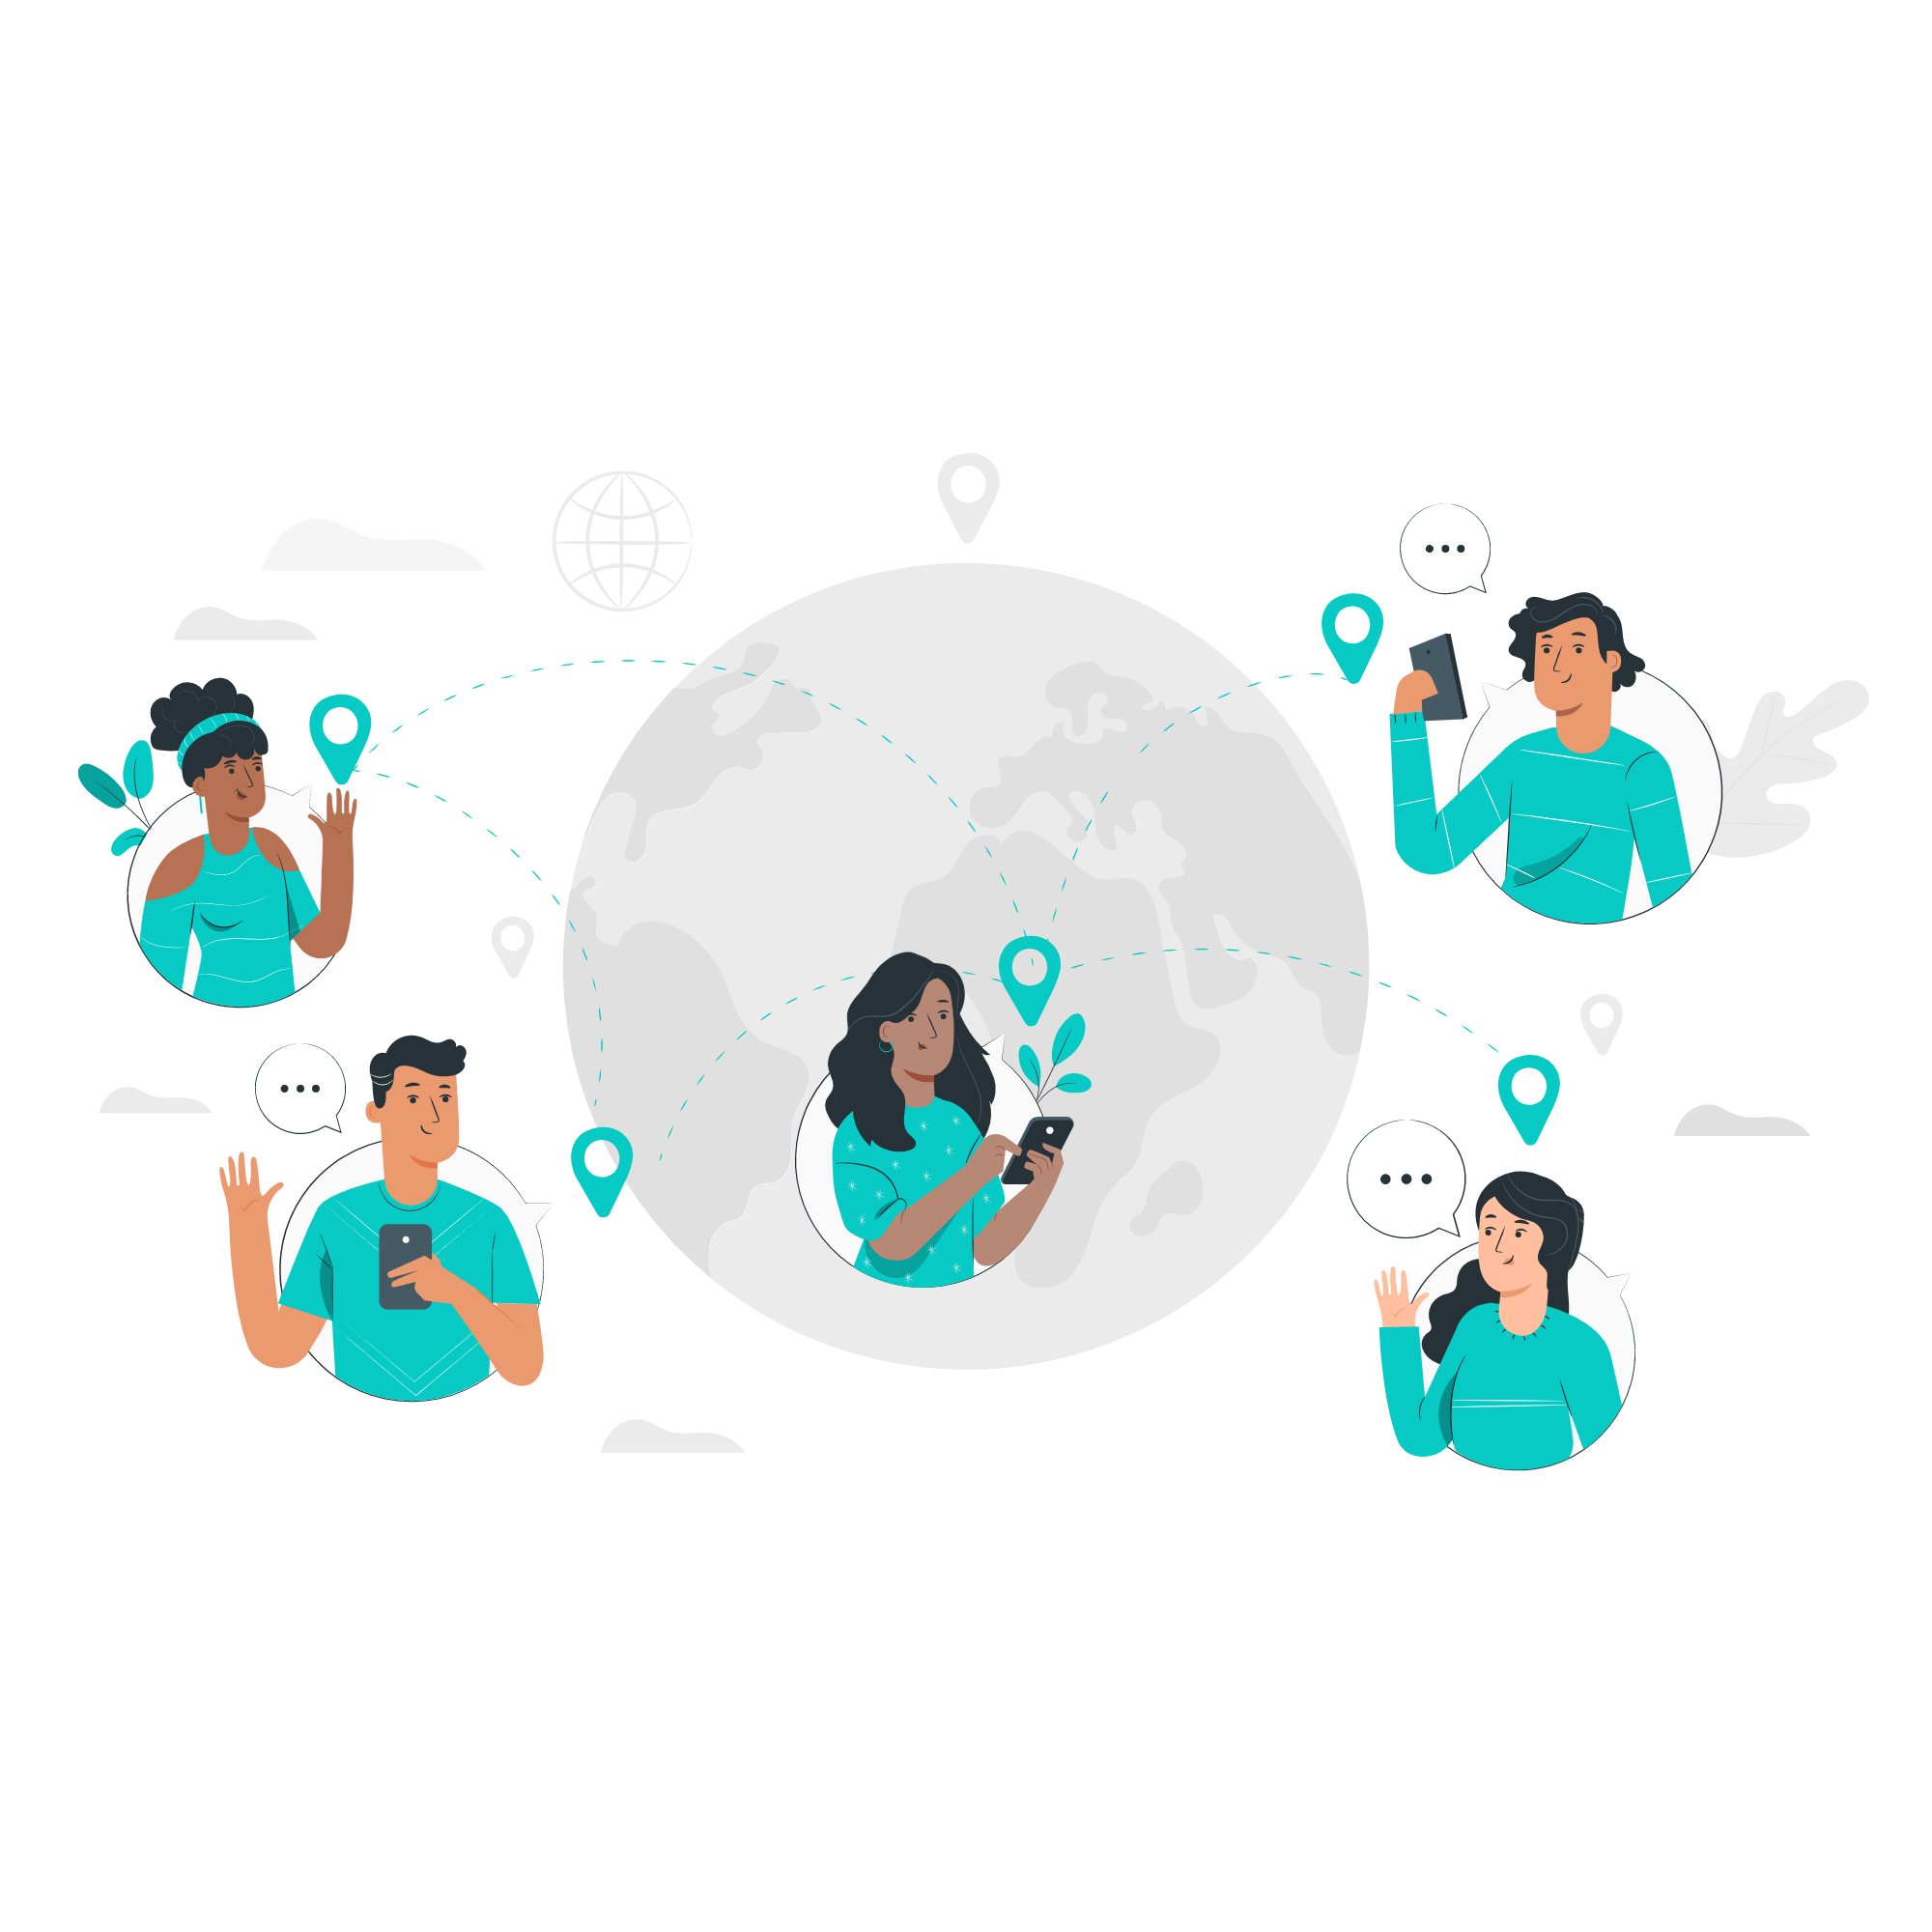 How to manage teams remotely while maintaining company culture